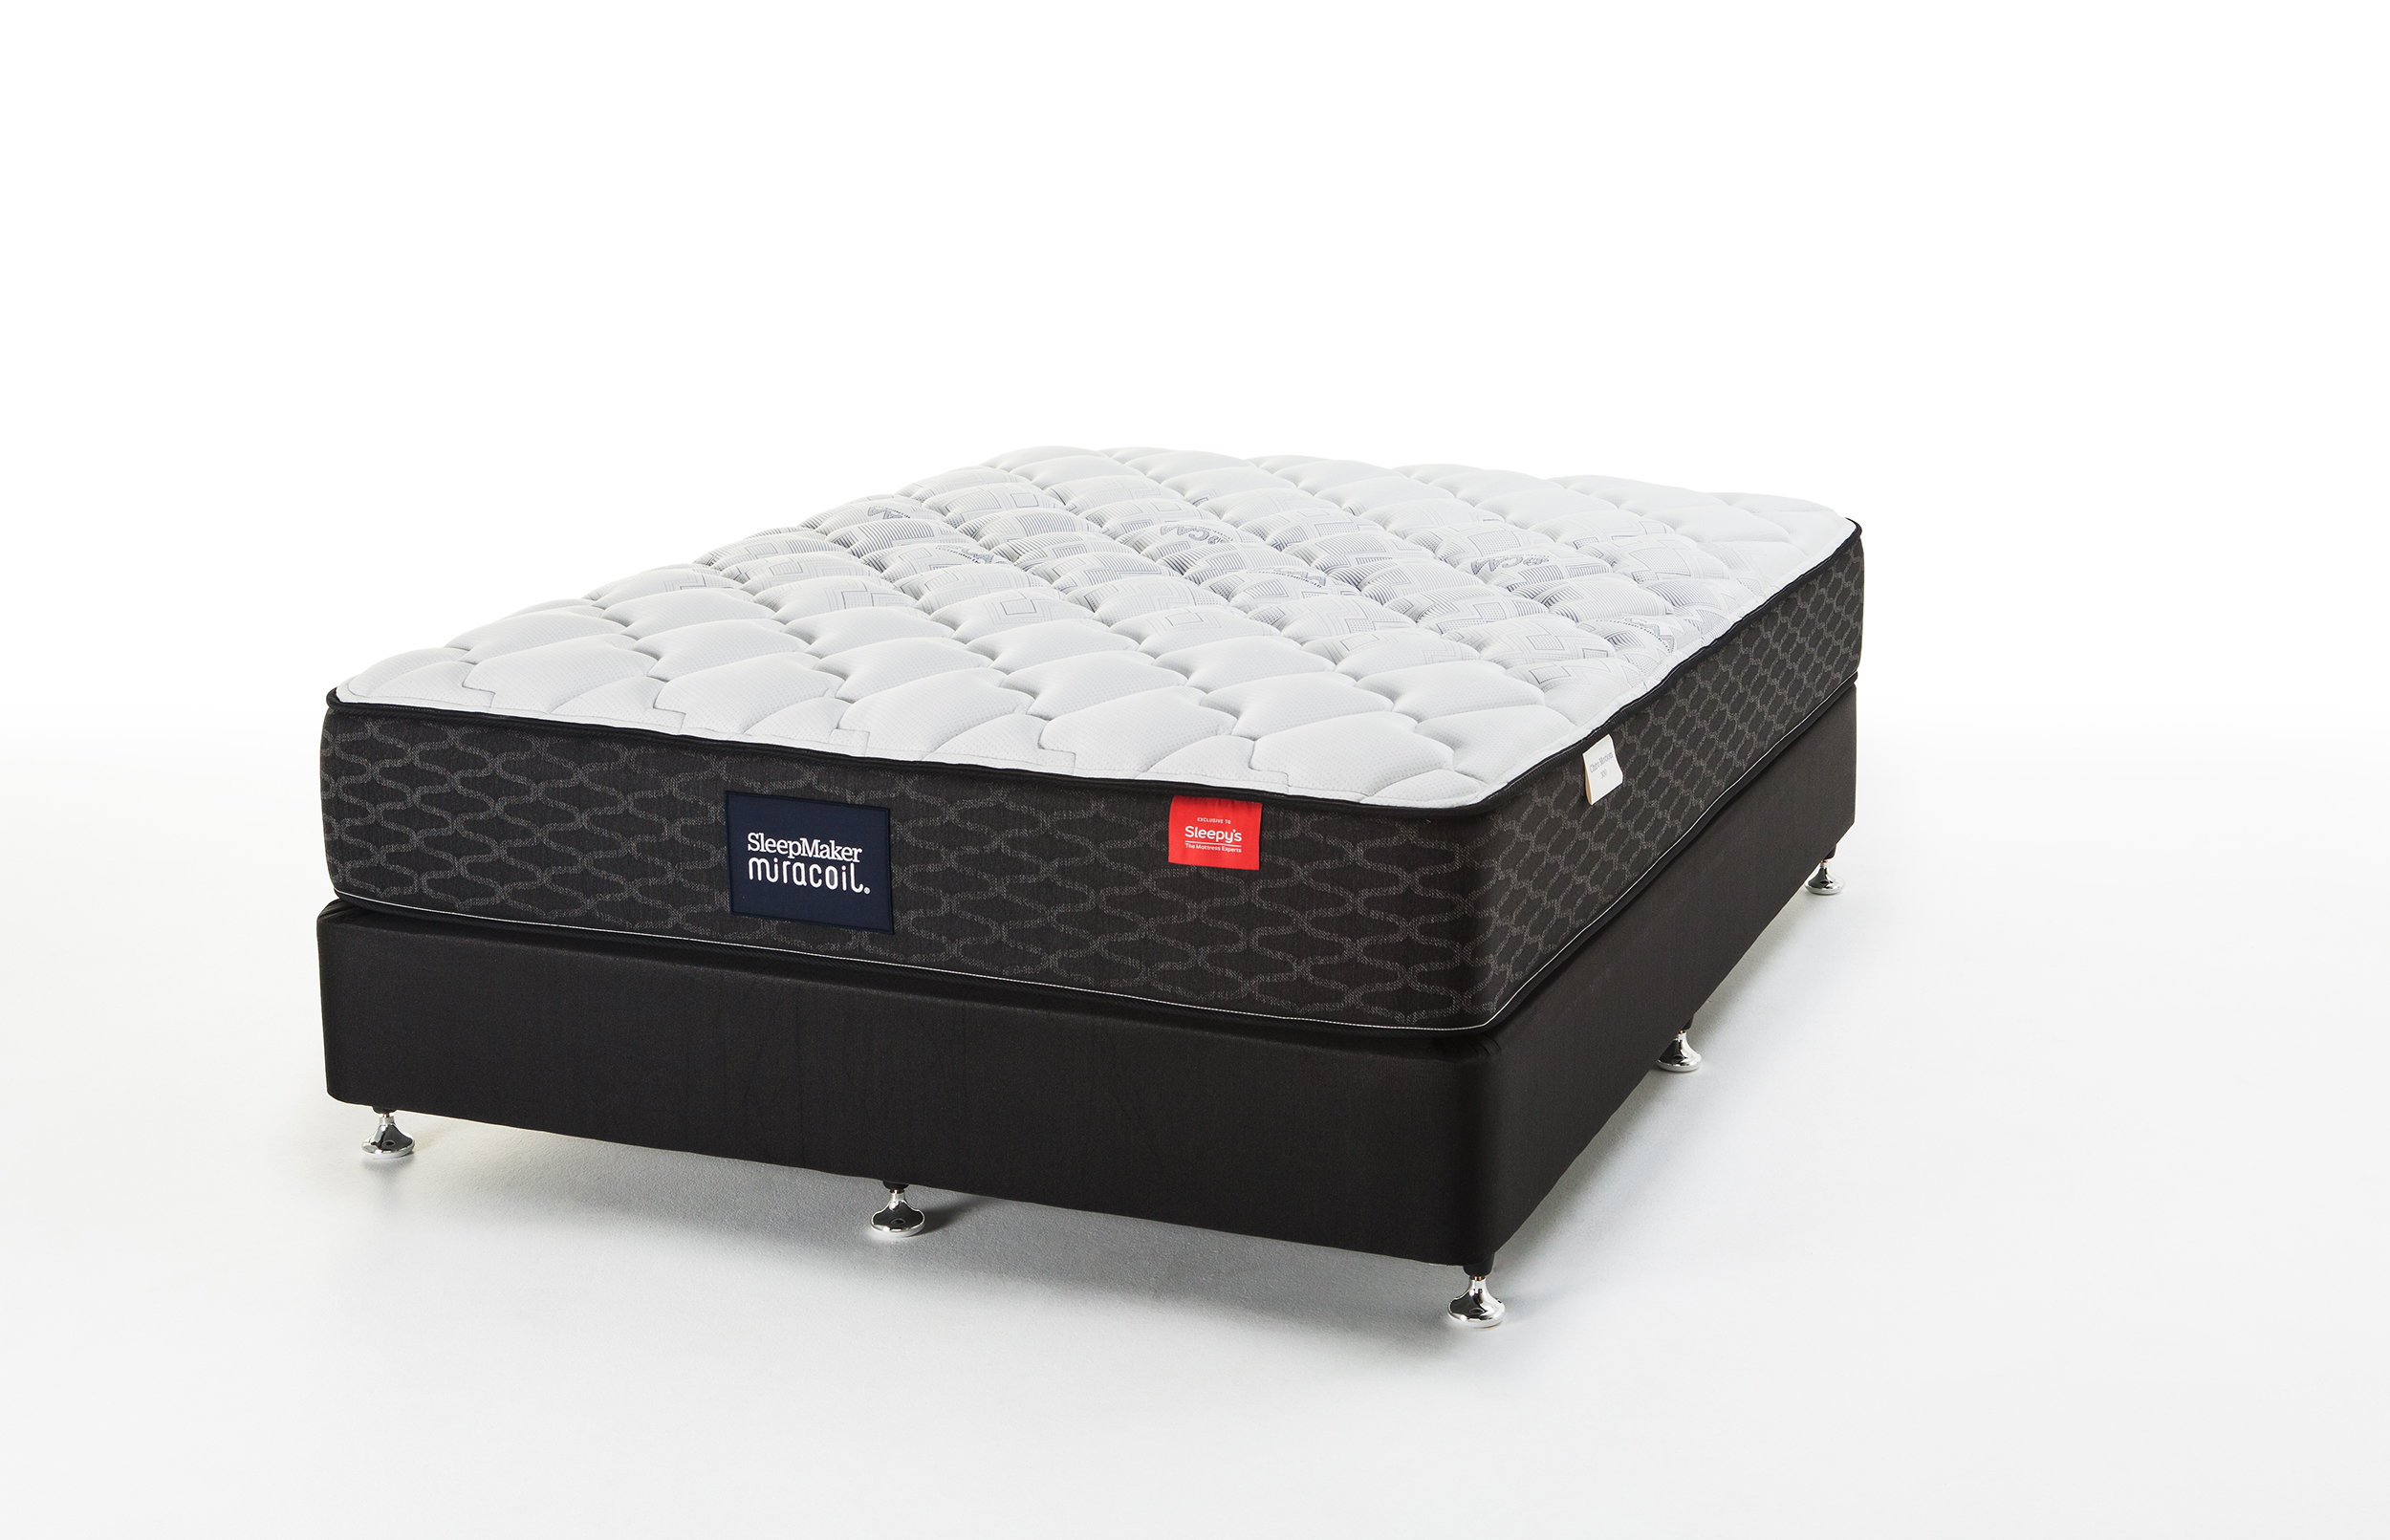 Sleepy's Nova Black Bed Base